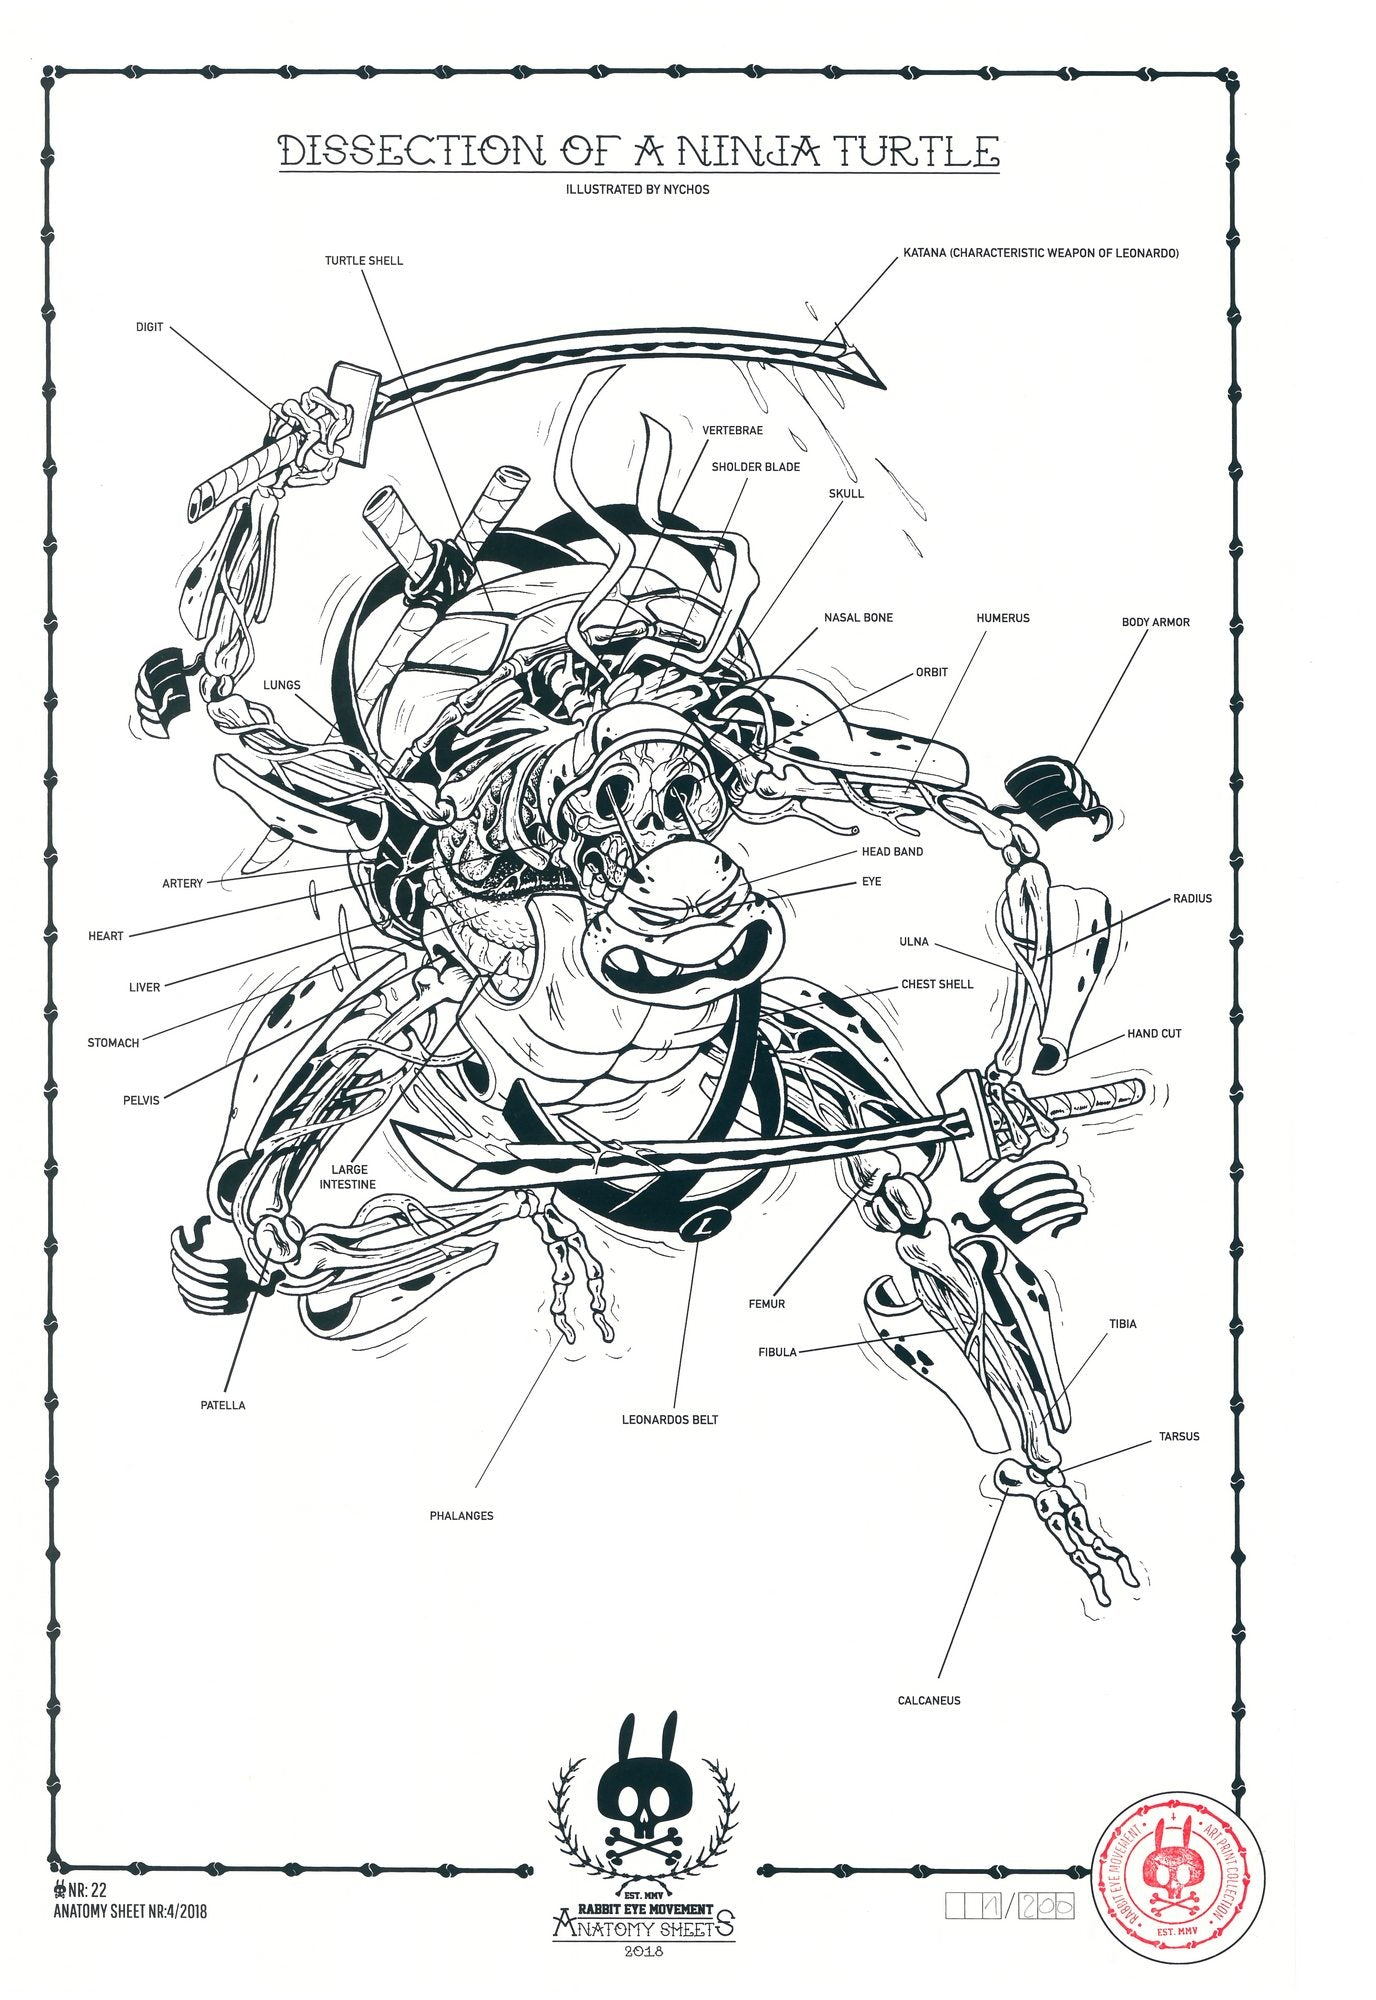 Dissection of Ninja Turtle: Anatomy Sheet – Outré Gallery